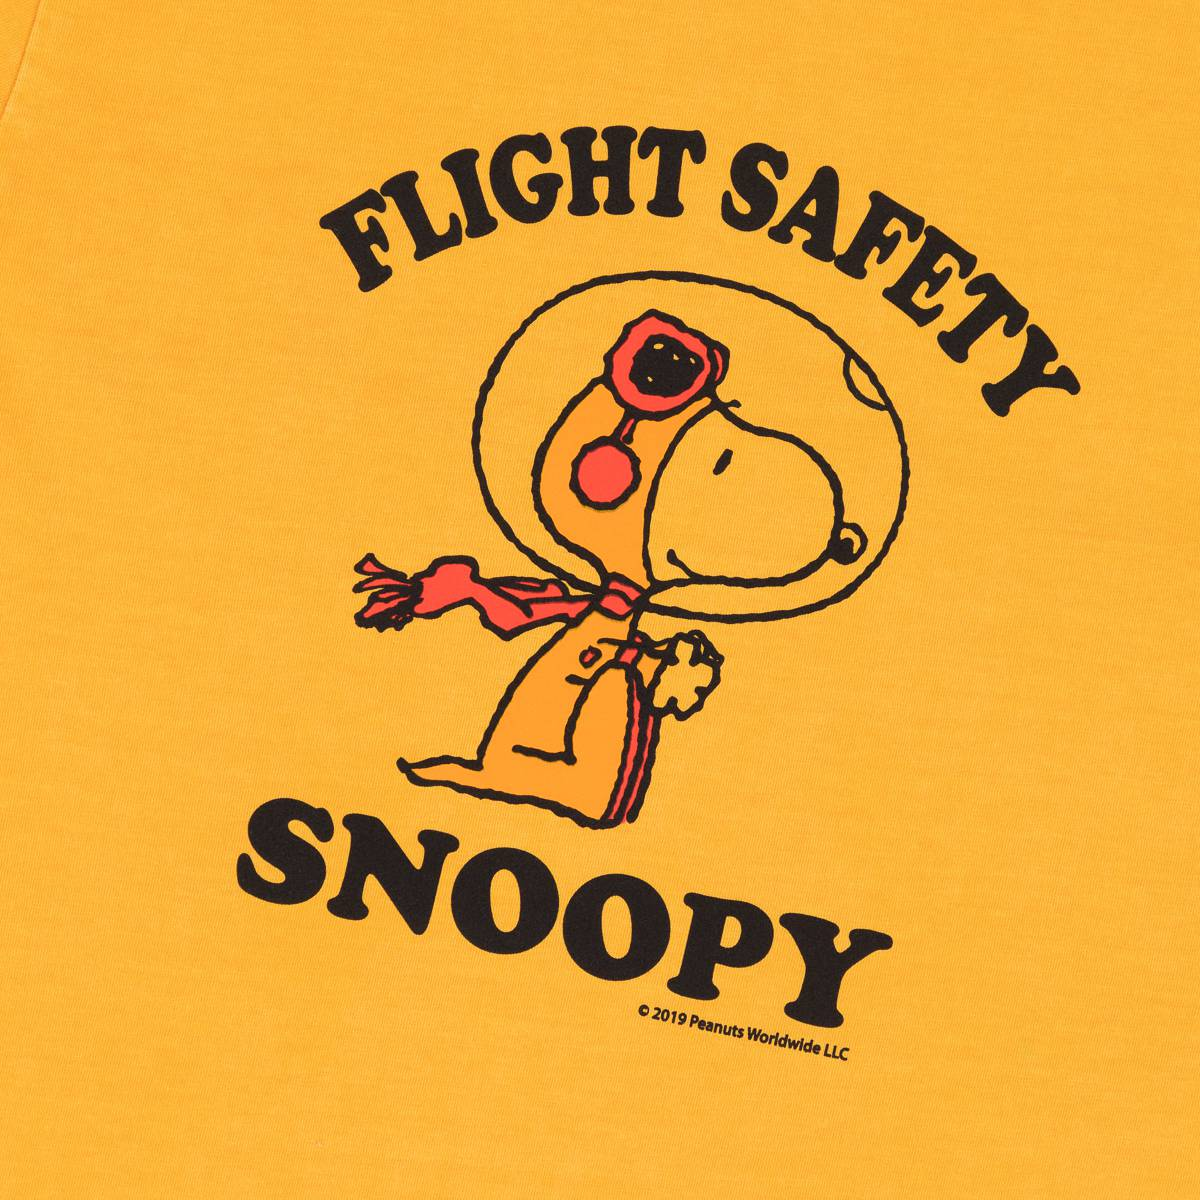 Snoopy Flight Safety Tee